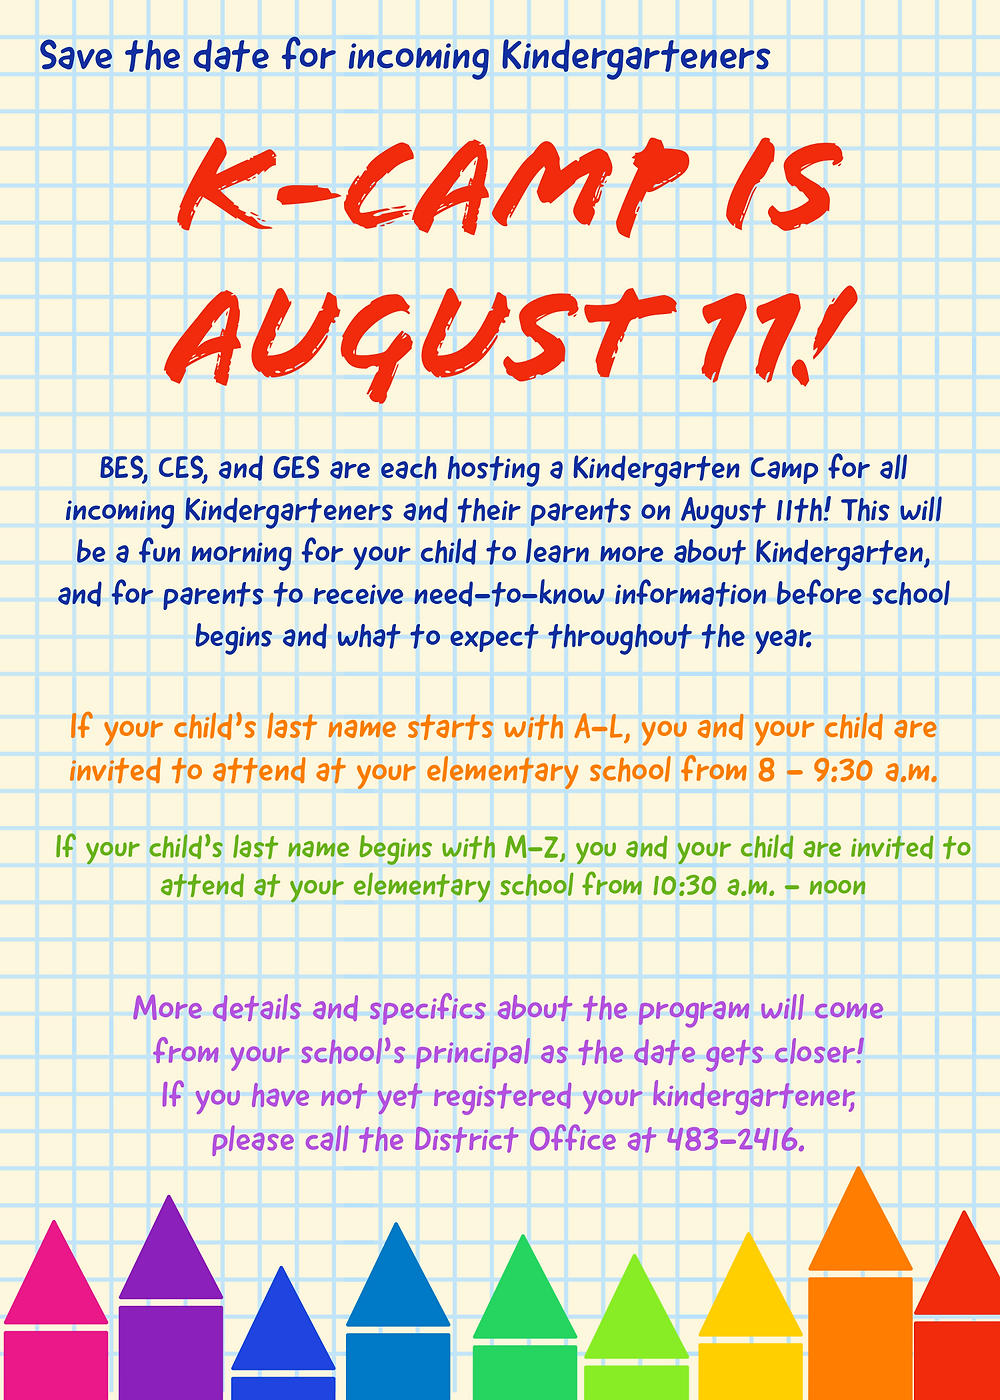 K-Camp event for upcoming Kindergarteners and their parents